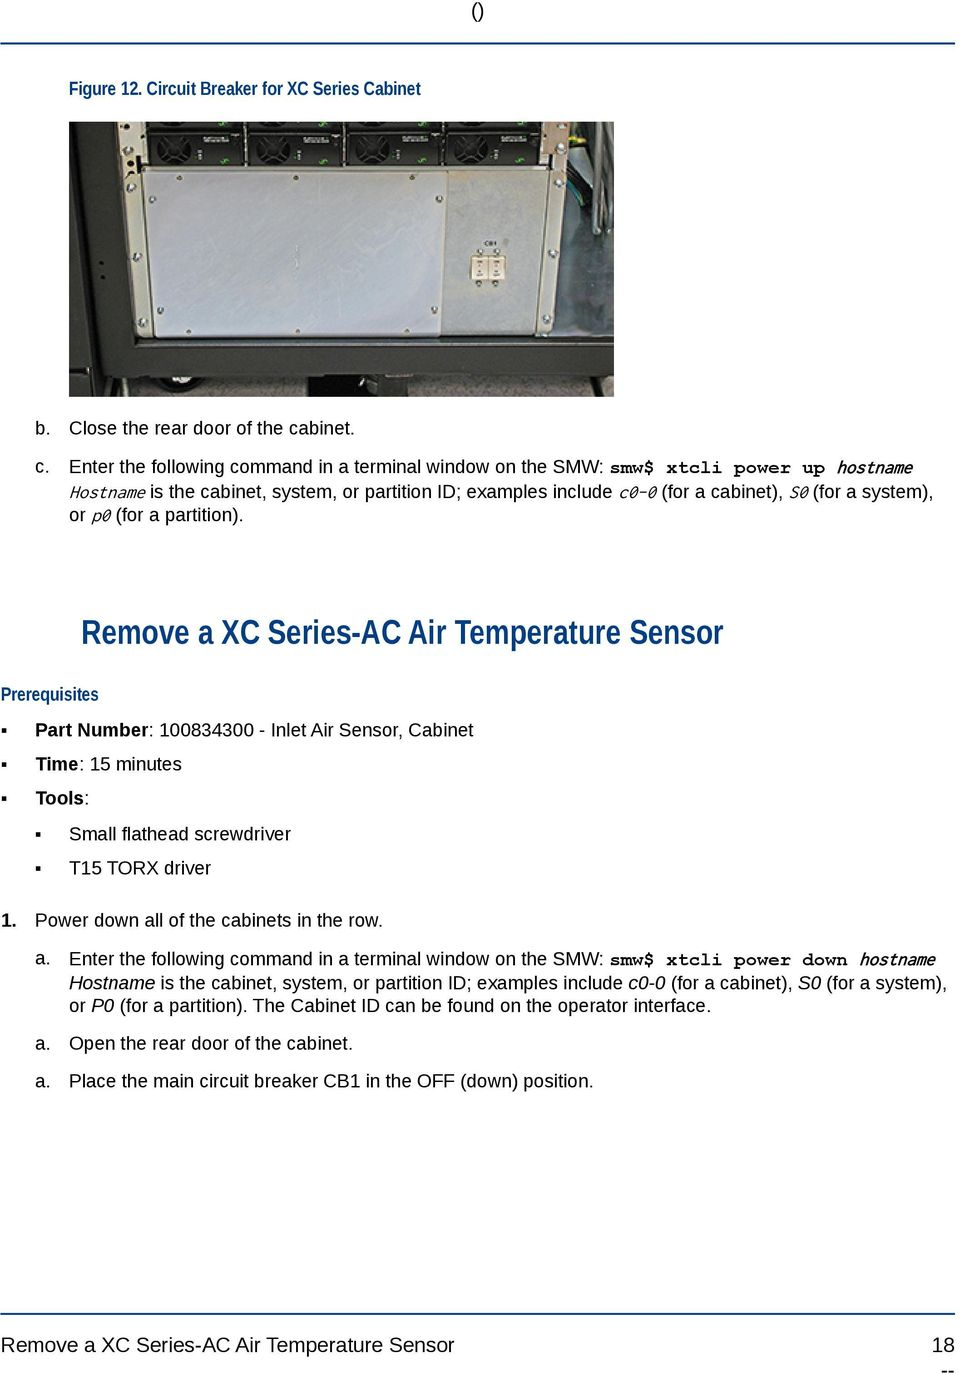 Xc Series Ac Repair Procedures Pdf Circuit Breakers Gt Id Earth Leakage Breaker Enter The Following Command In A Terminal Window On Smw Xtcli Power 19 Figure 13 For